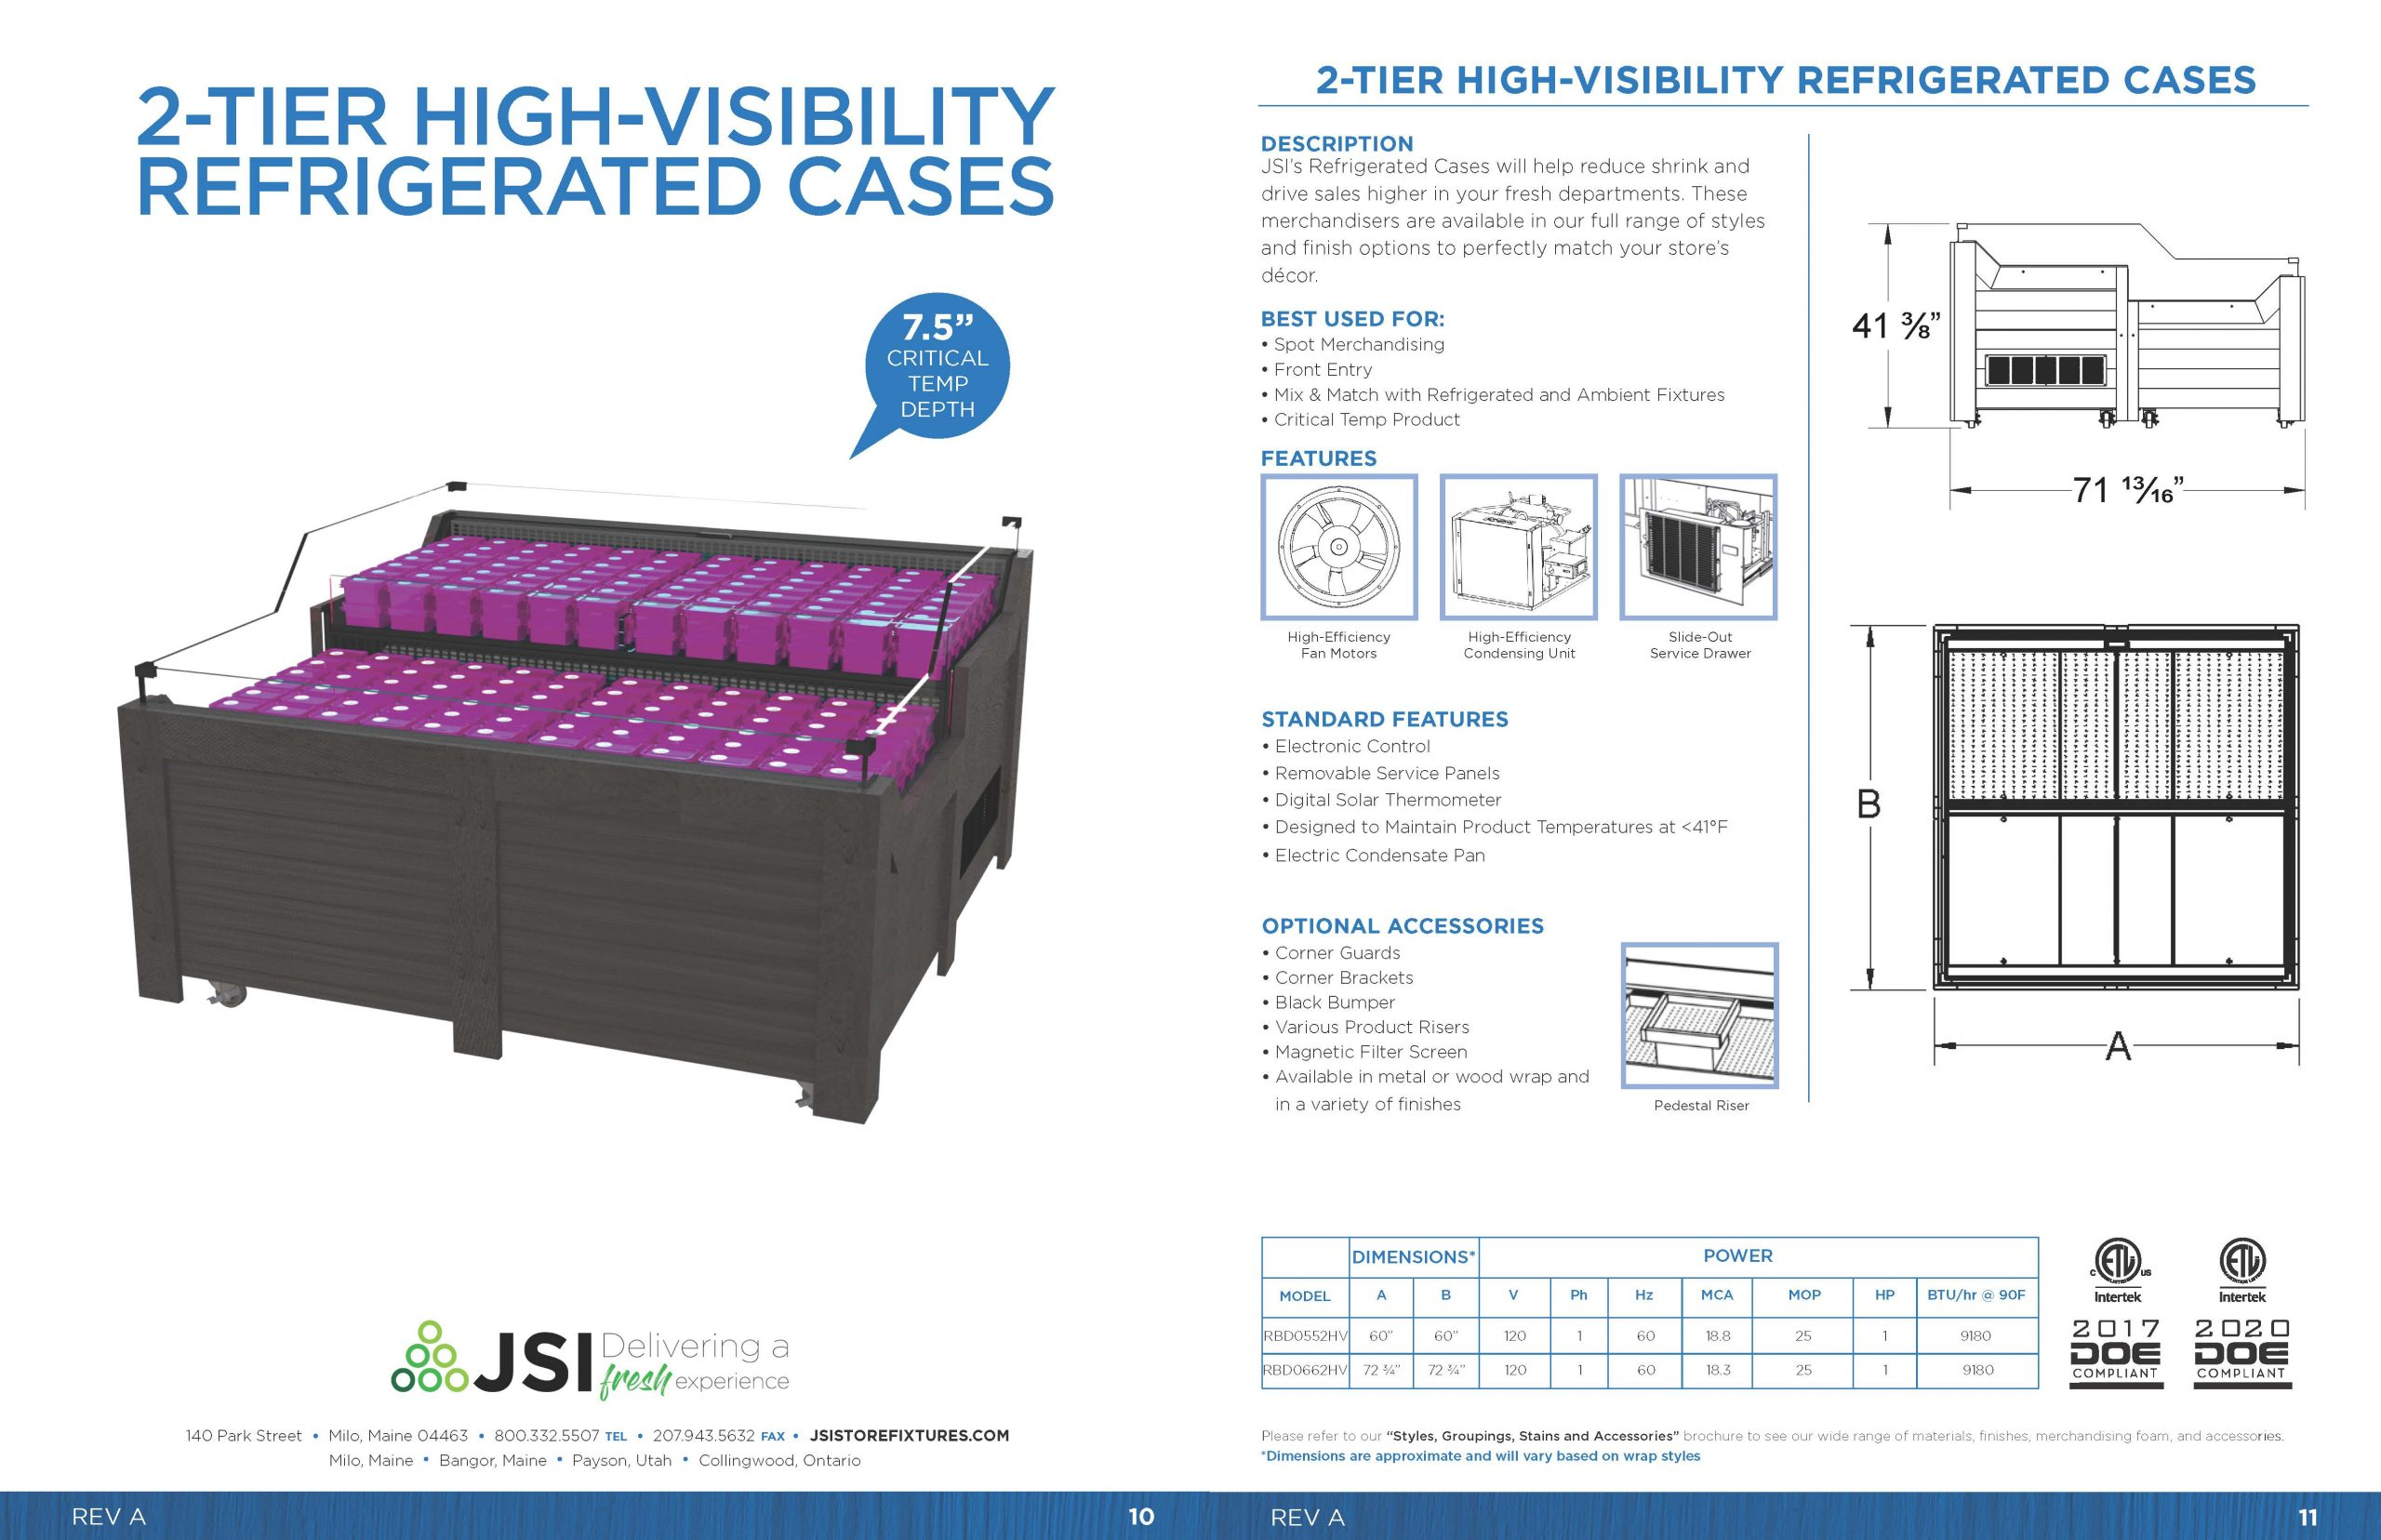 2-Tier High-Visibility Refrigerated Cases